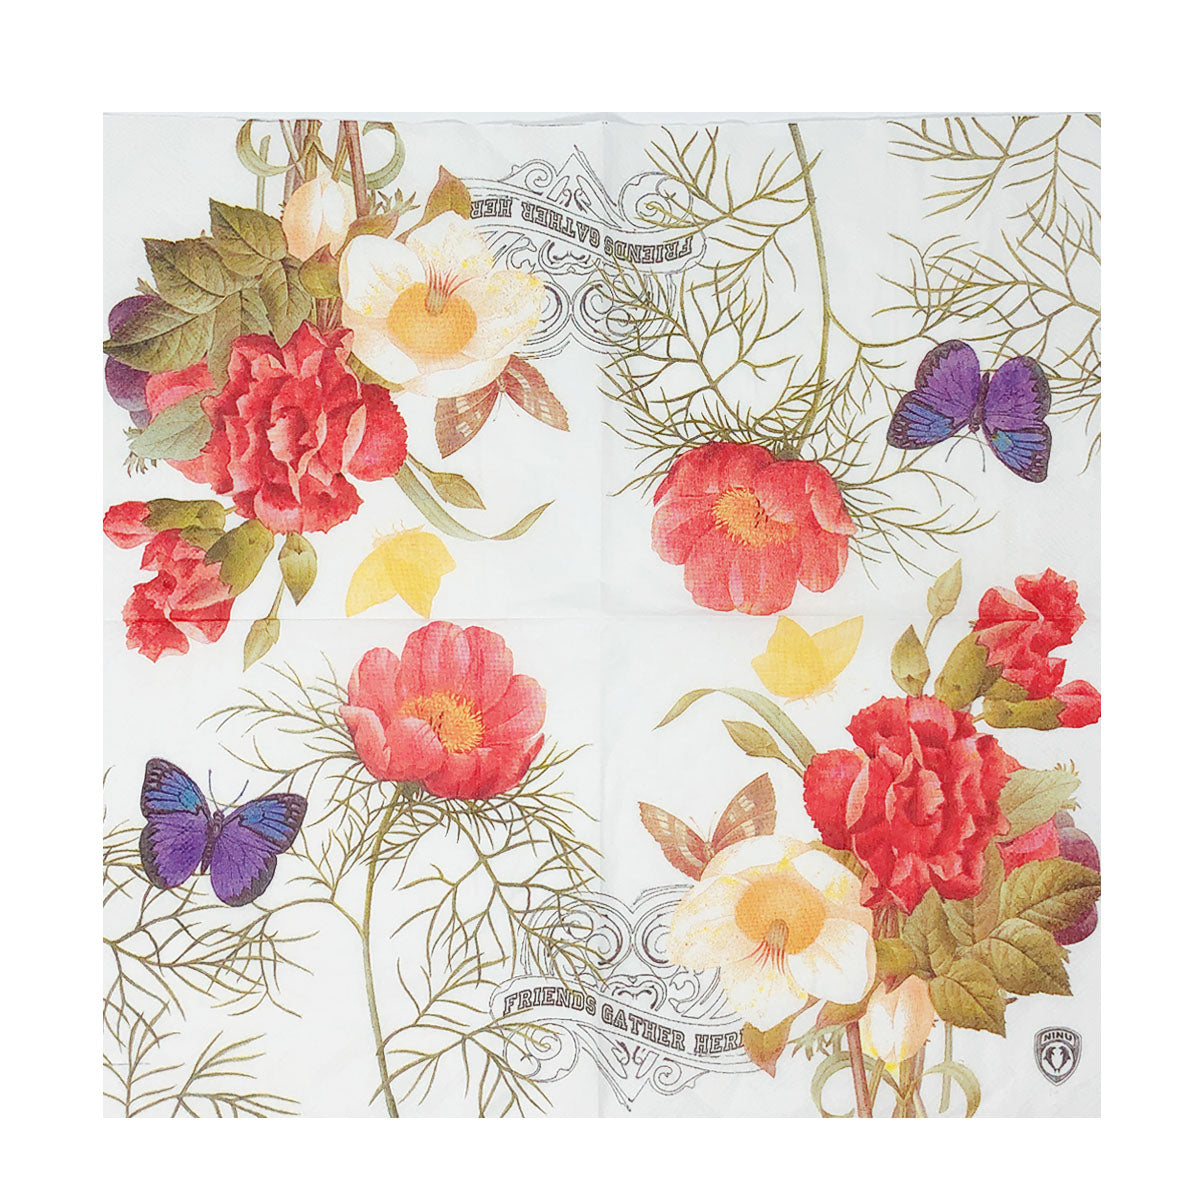 24.5x48.5- Avail Non-Laminated or Laminated Pattern Floral Fancy Wedding Wrap SET Your Pick 2 prints